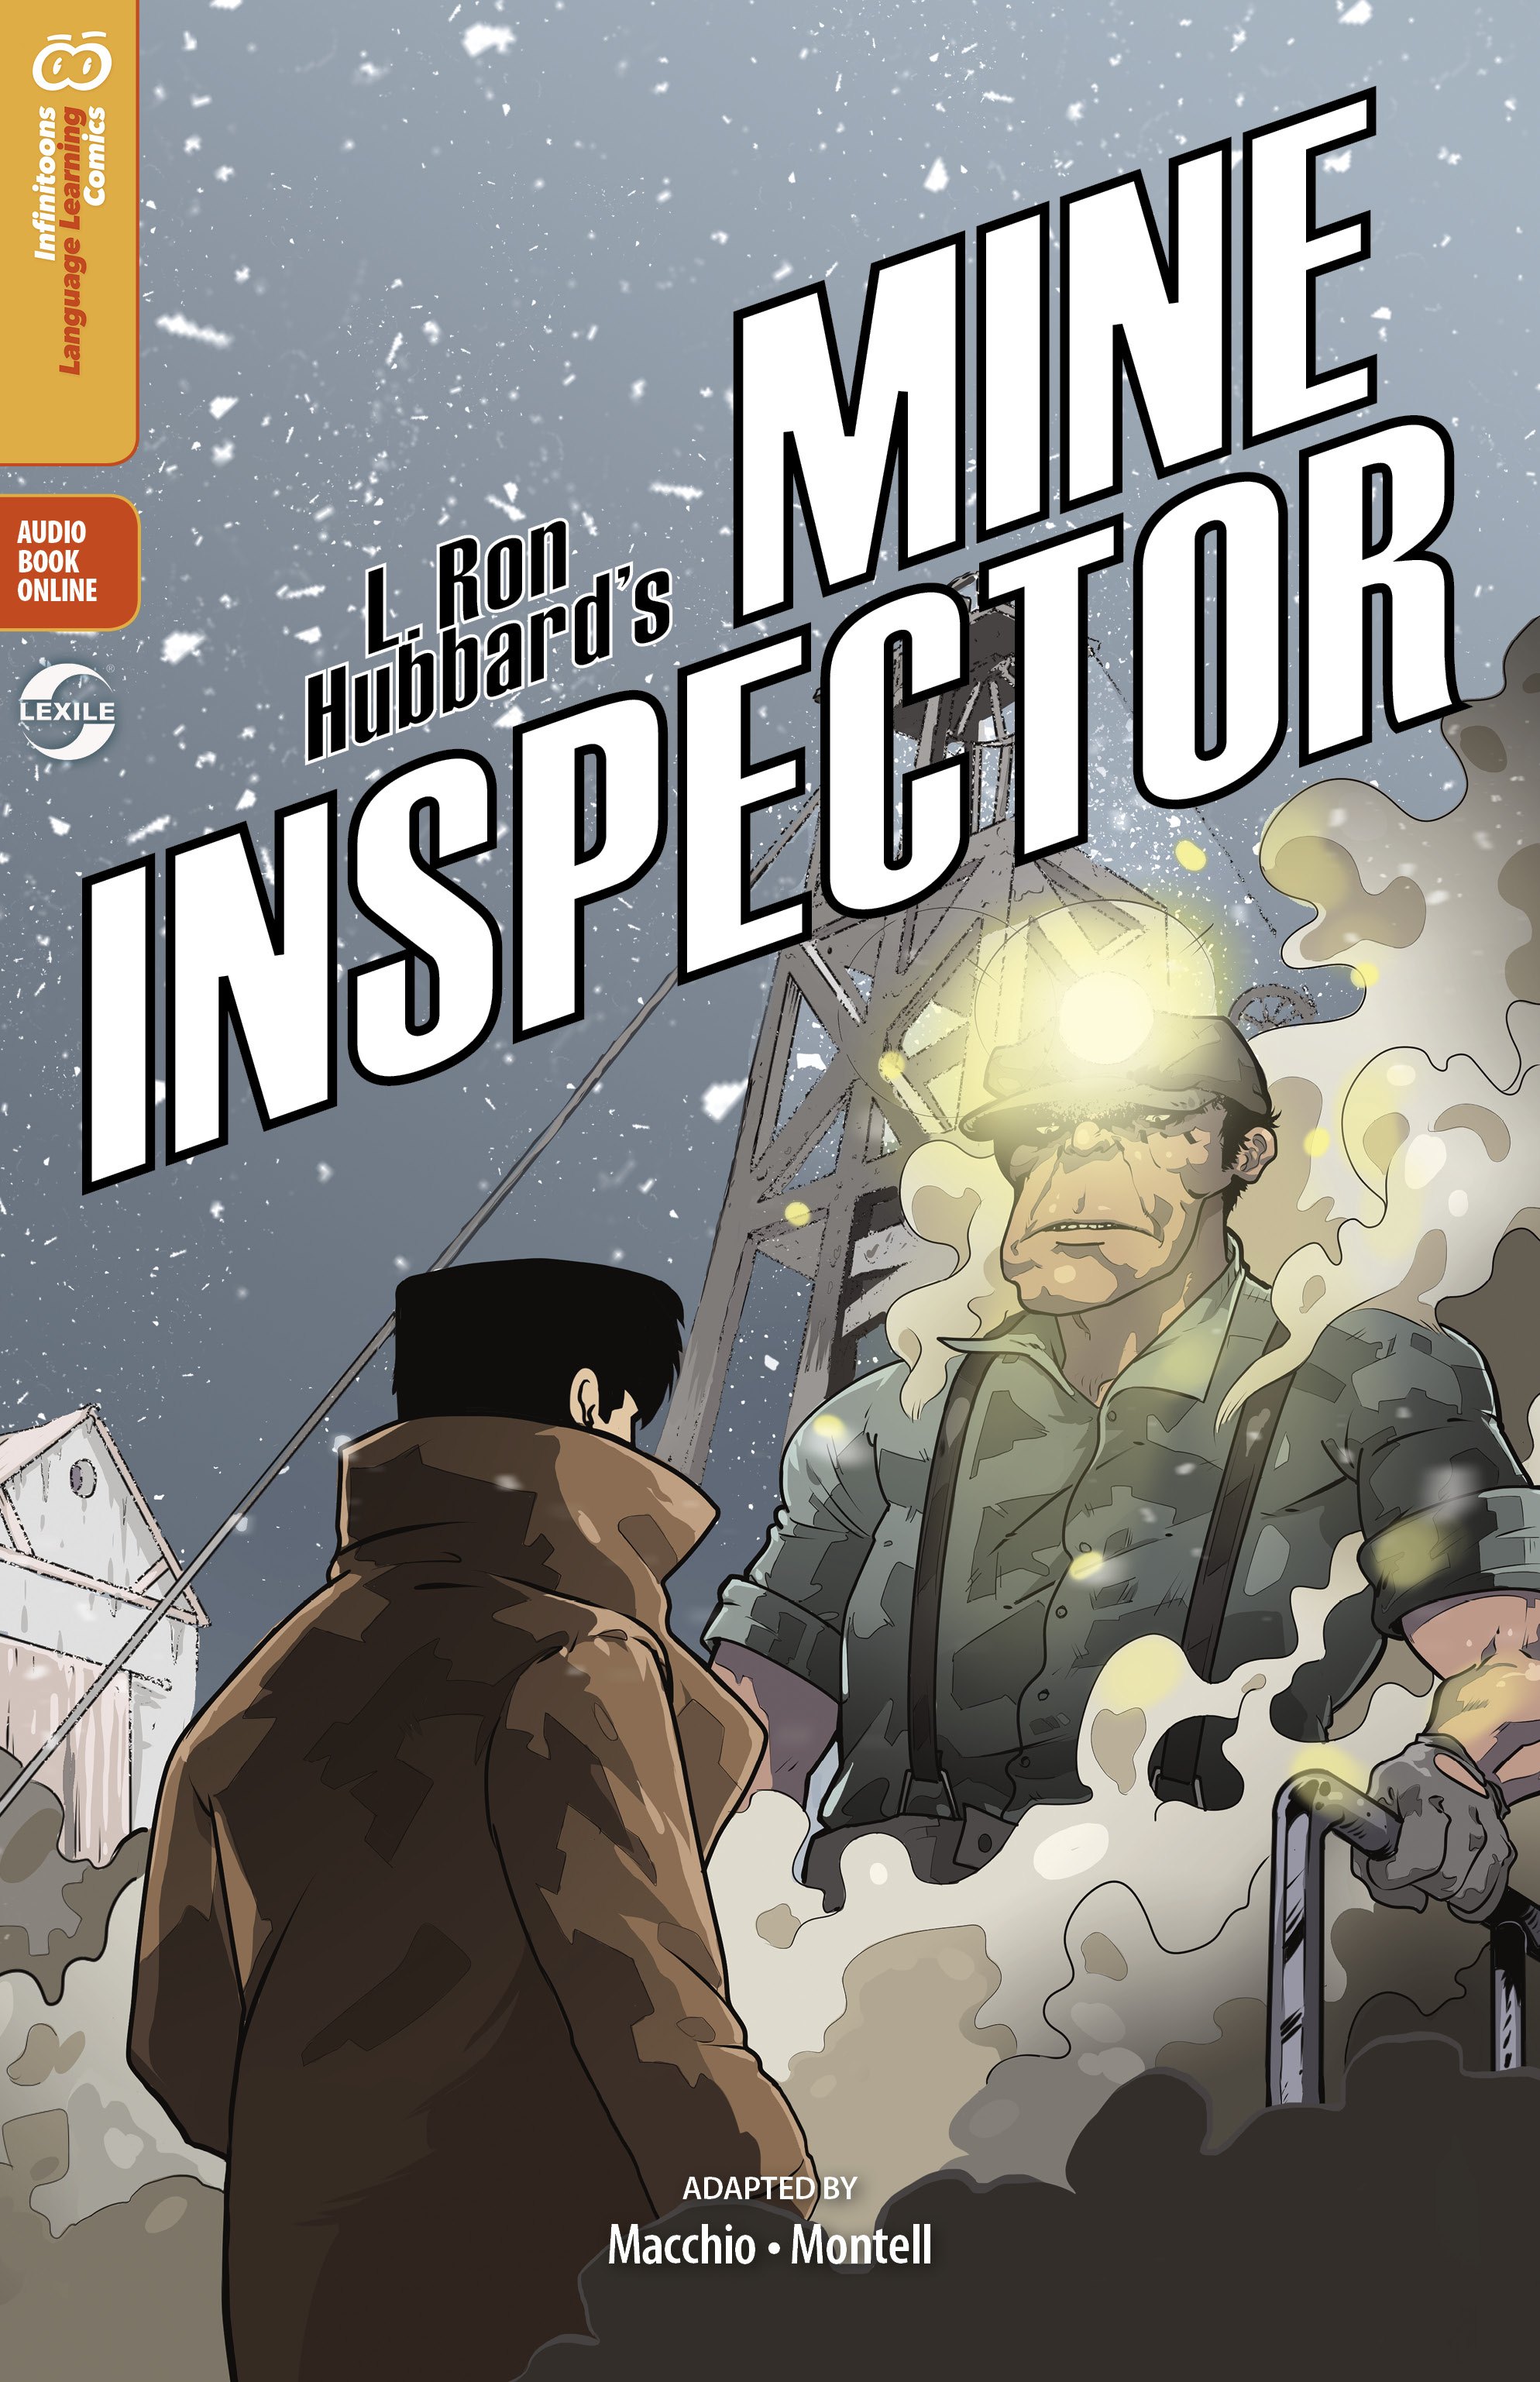 171110 Mine Inspector cover and interior-AH-171207a-cover.jpg